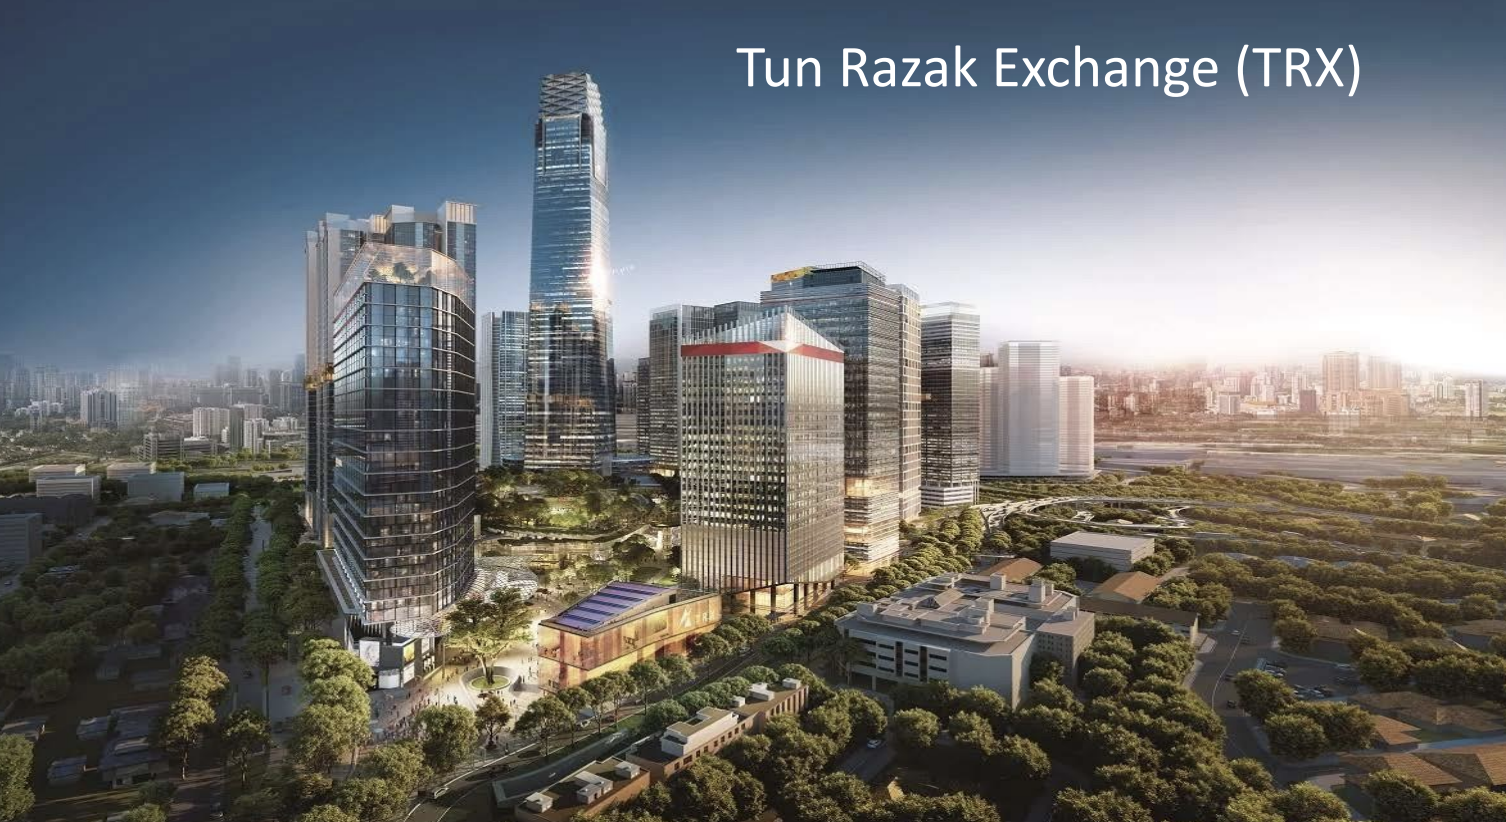 Introducing the Tun Razak Exchange (TRX) – the Newest CBD of Kuala Lumpur